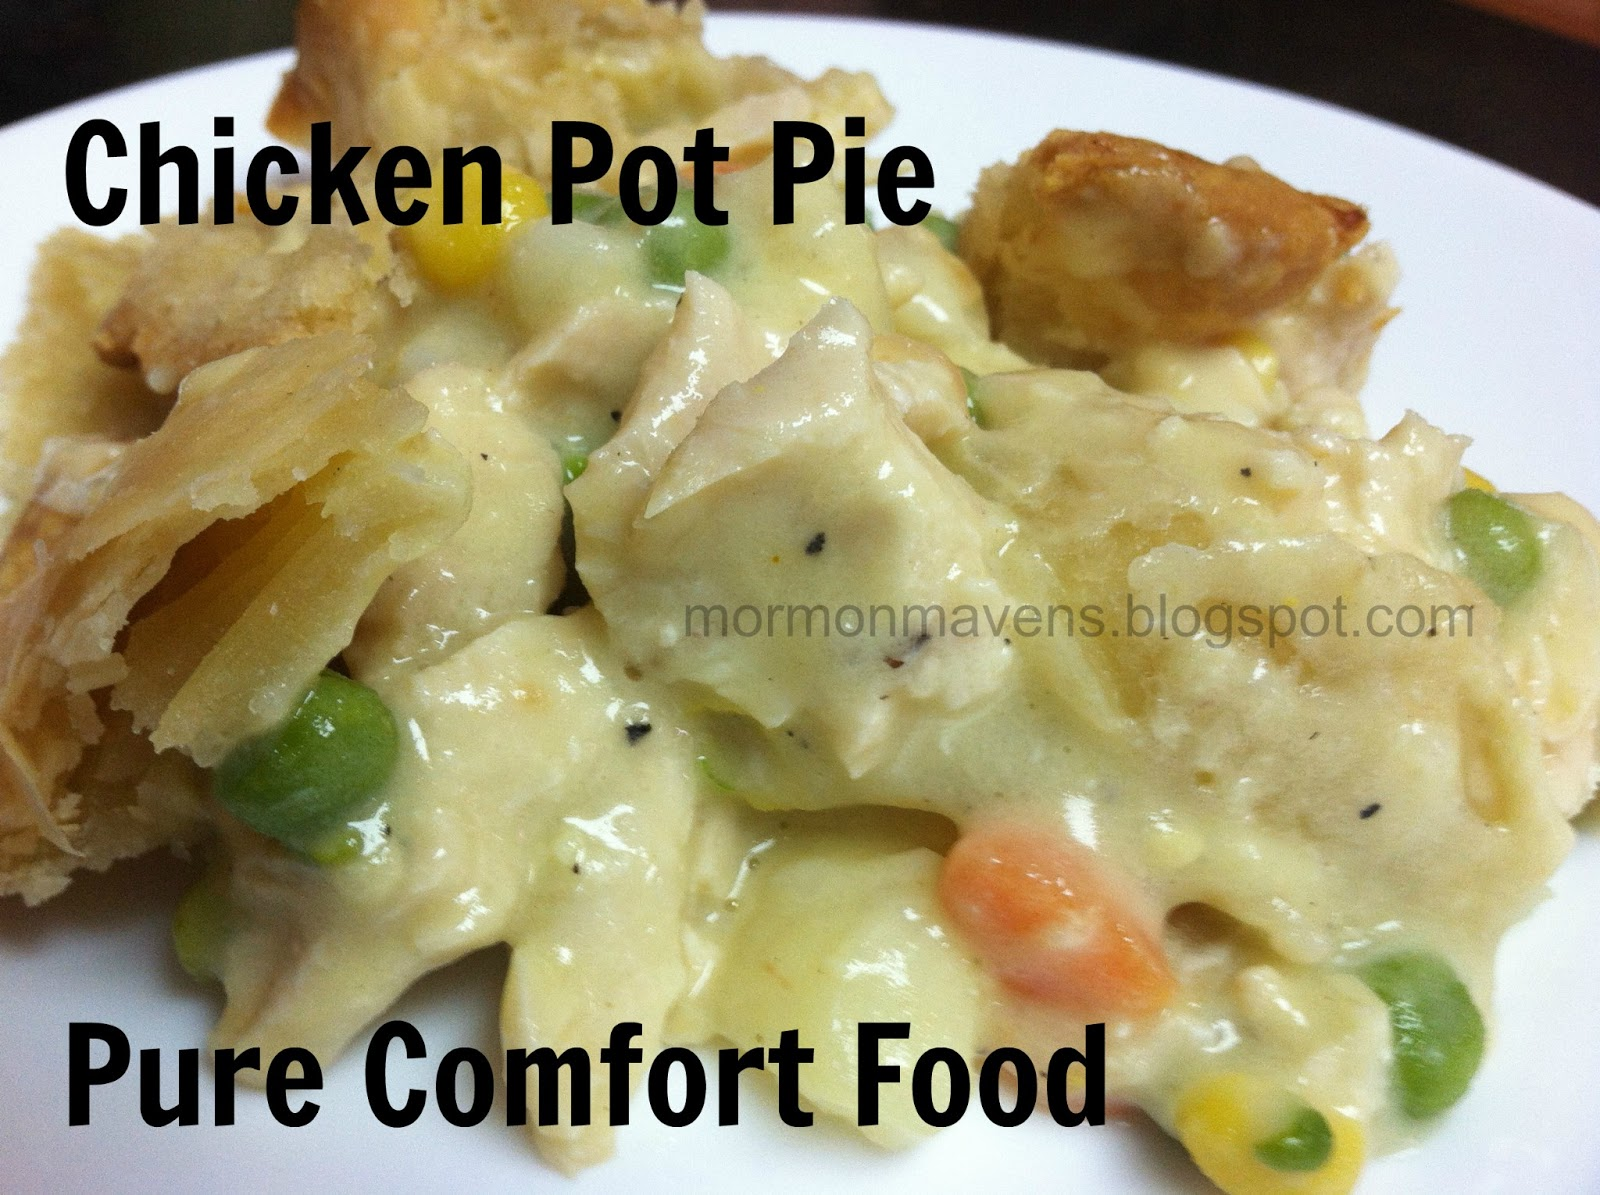 Mormon Mavens in the Kitchen: Homemade Chicken Pot Pie